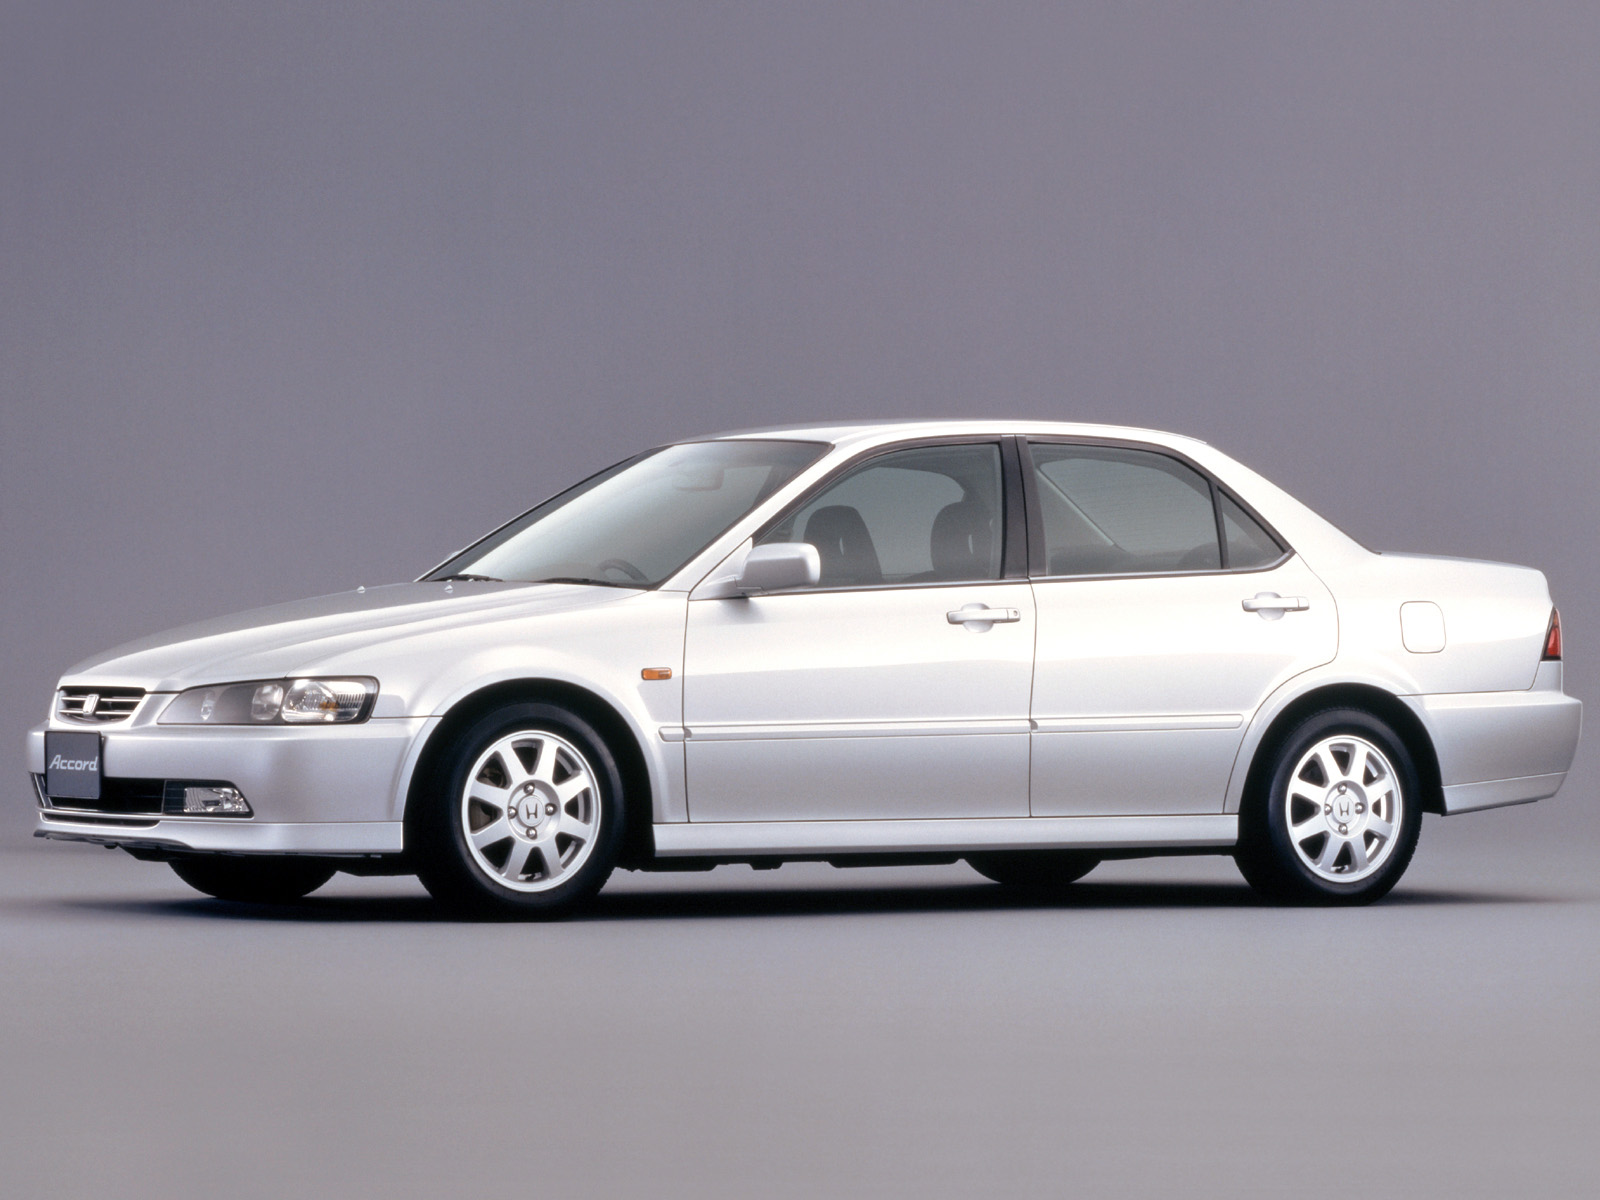 Honda Accord 2.0 2000 photo - 2